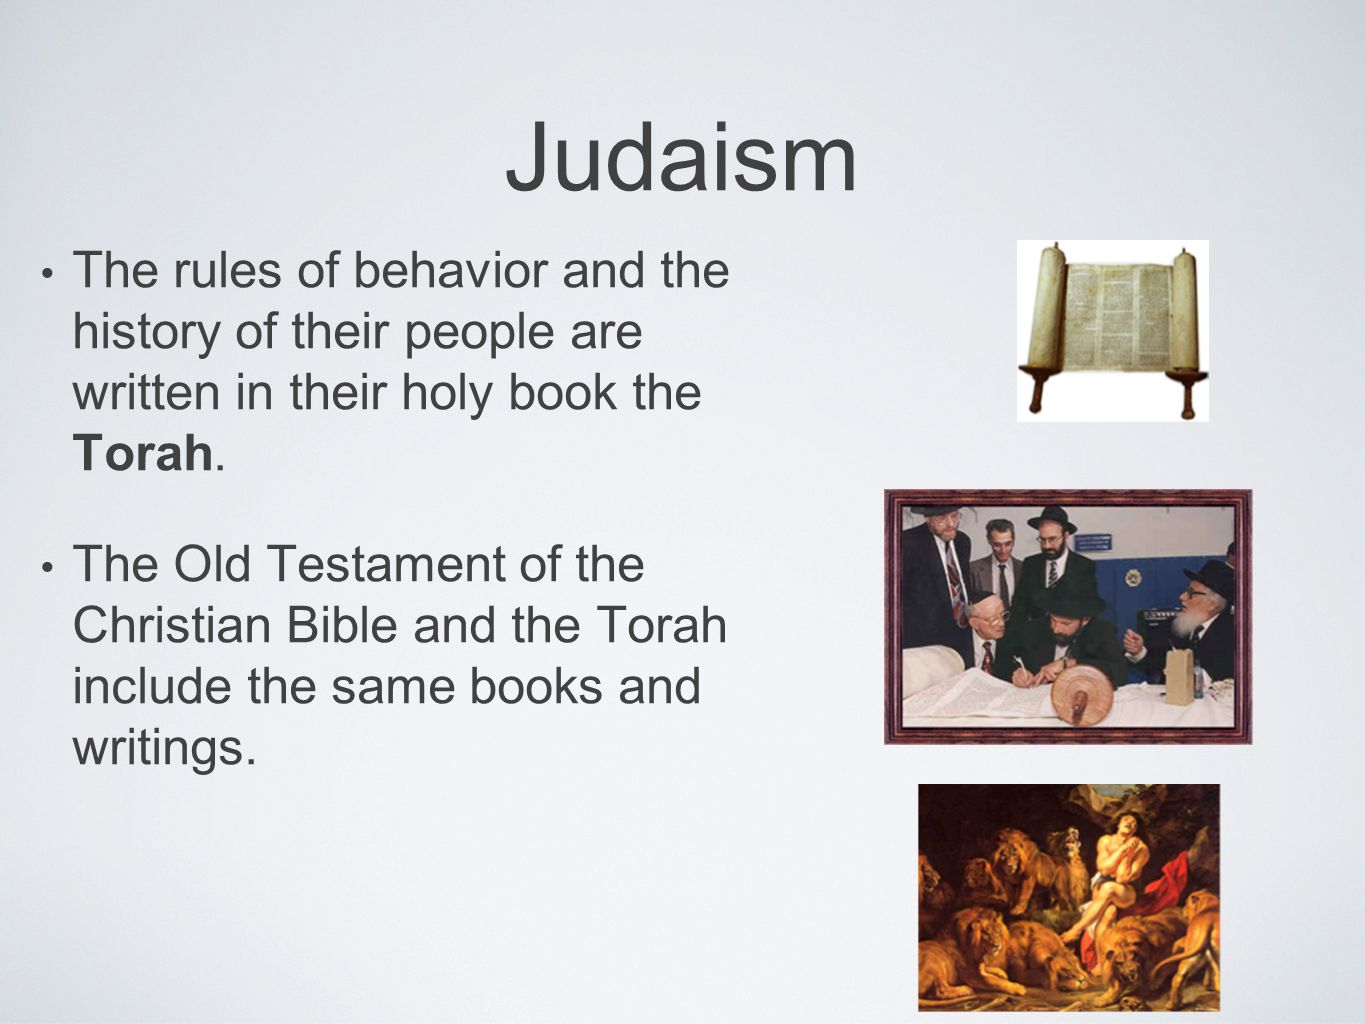 Judaism The rules of behavior and the history of their people are written in their holy book the Torah.